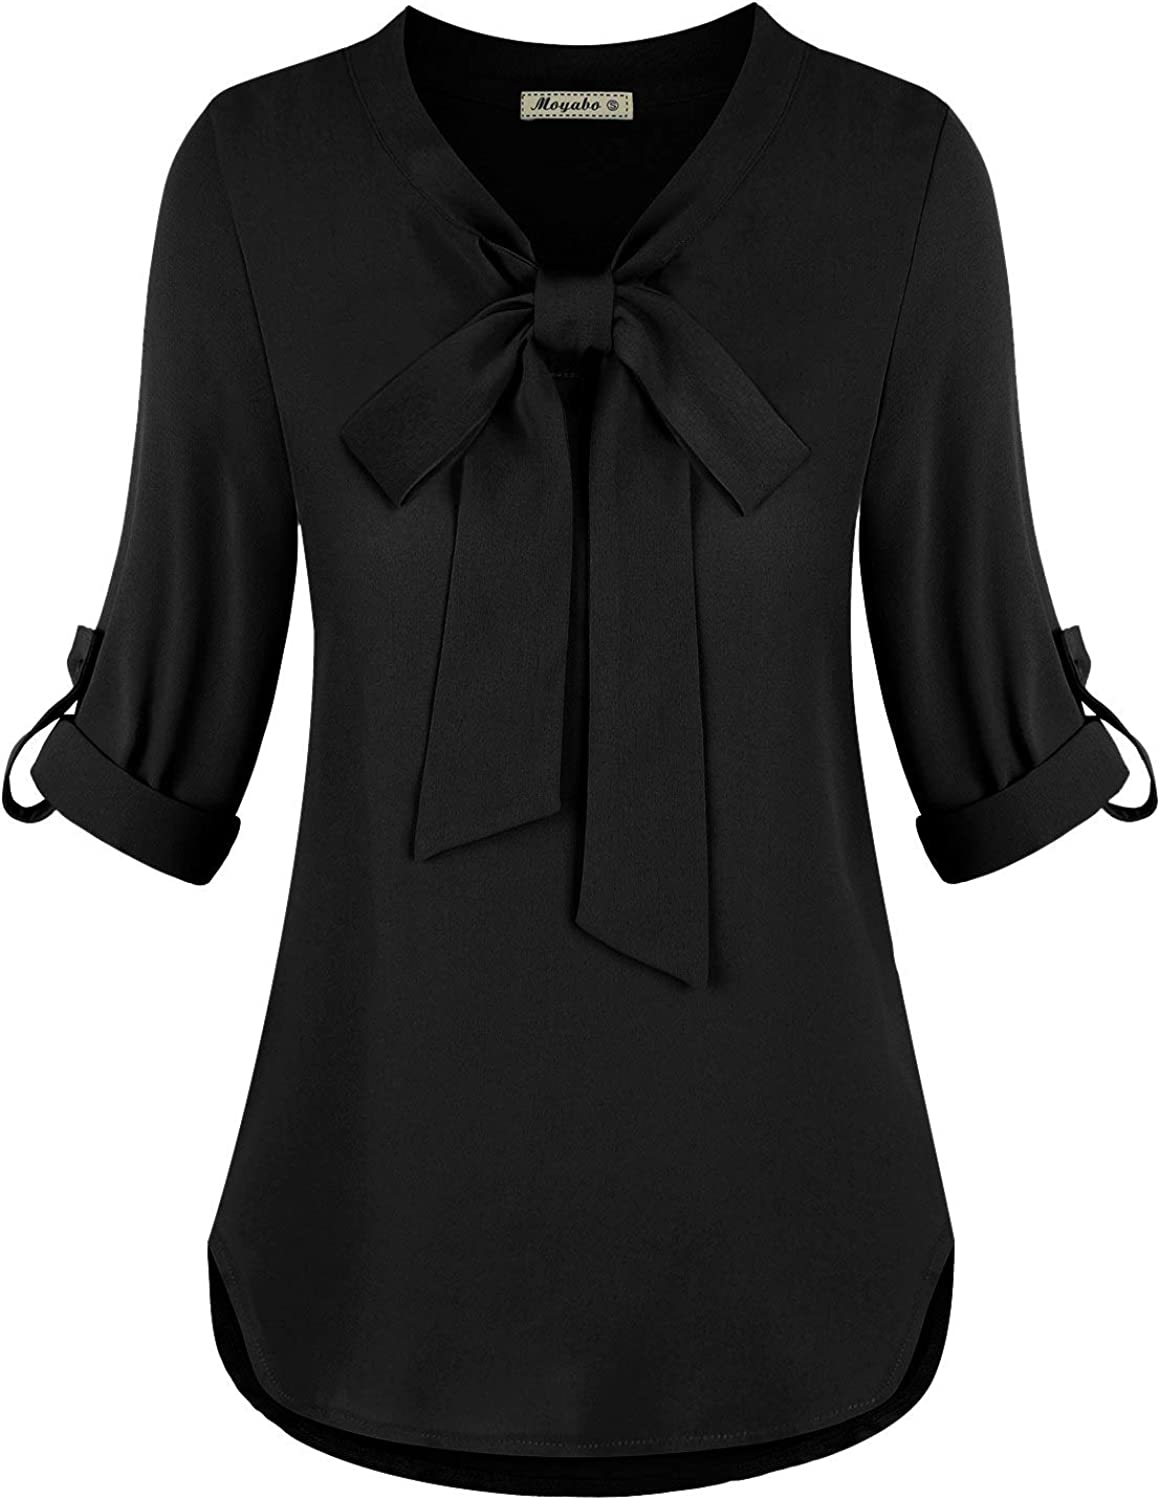 Moyabo Womens Bow Tie Neck Long Sleeve Casual Office Chiffon Blouse Top